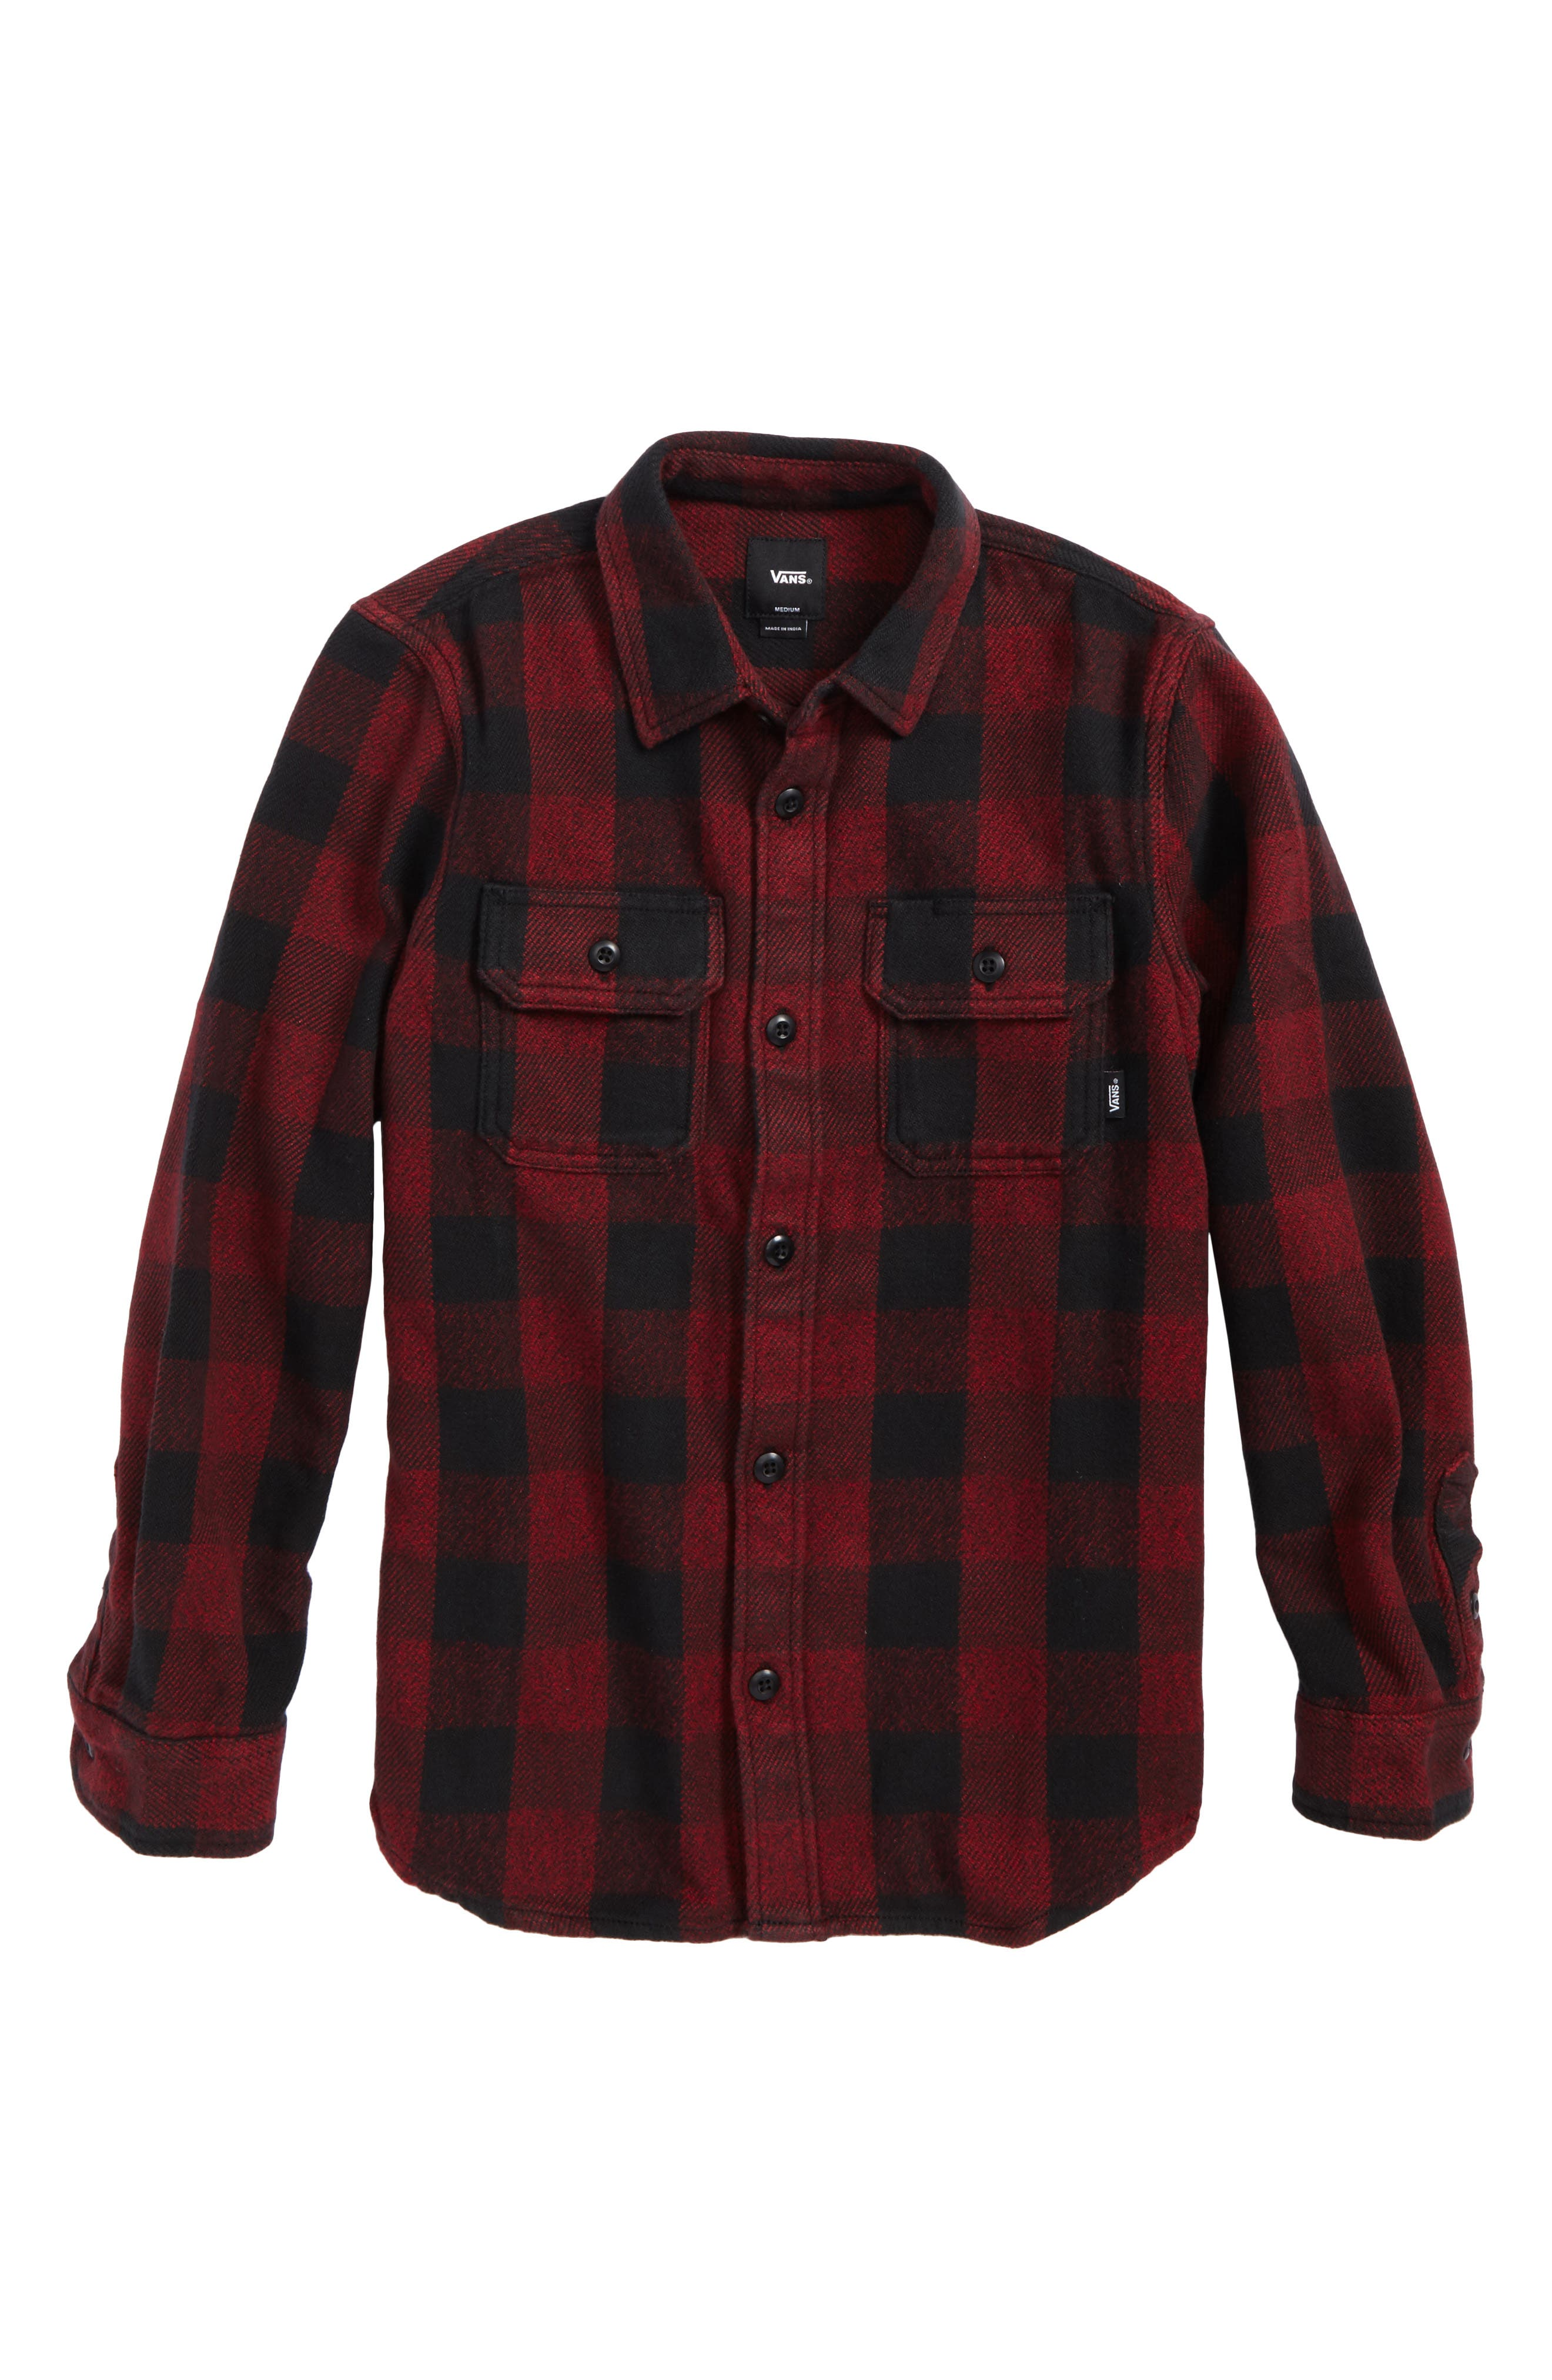 Wisner Buffalo Plaid Twill Shirt,                         Main,                         color,